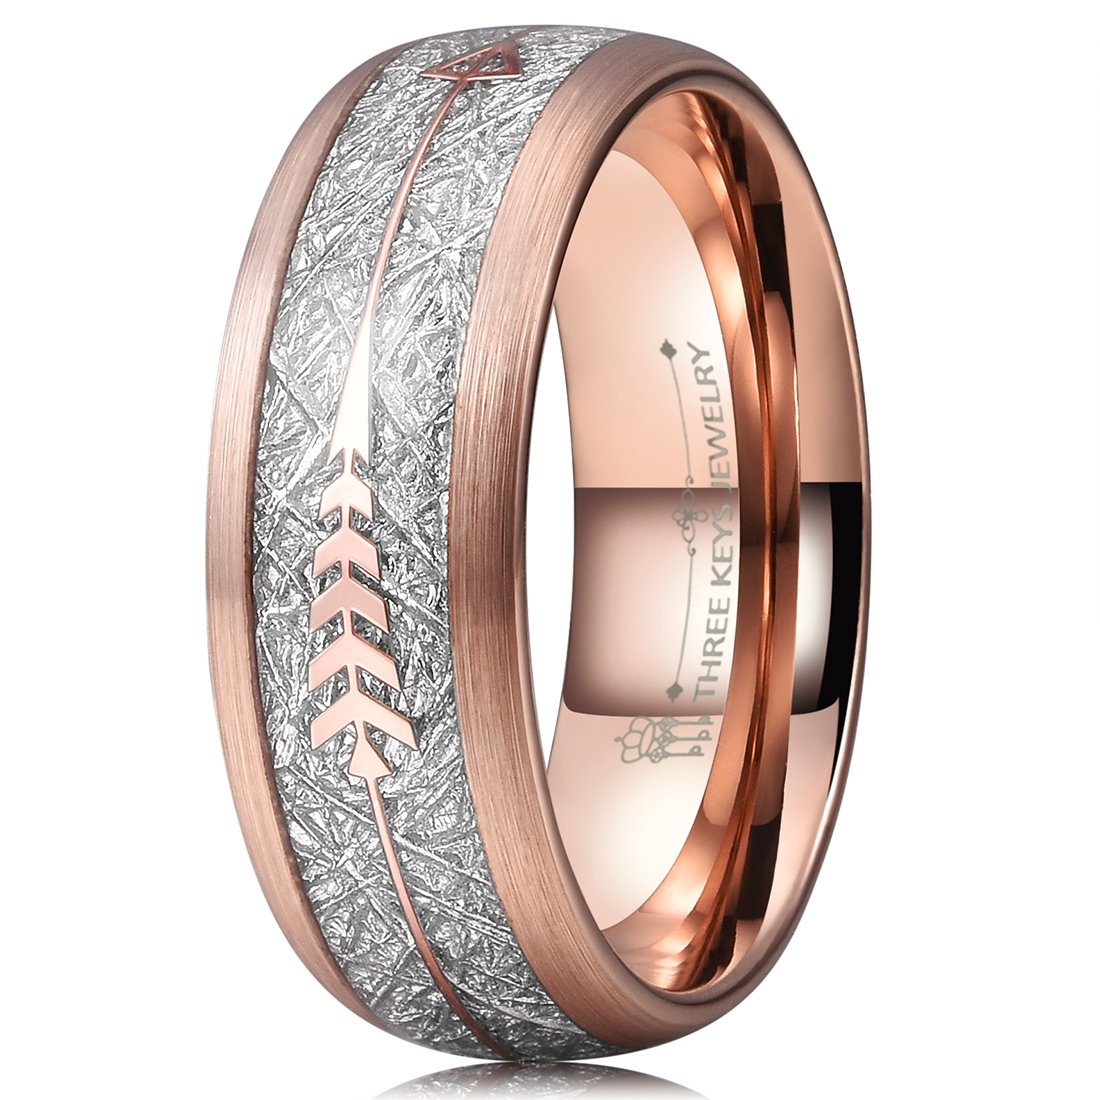 Three Keys 8mm Tungsten Wedding Ring for Men Domed Imitated Meteorite Arrows Inlay Rose Gold Mens Meteorite Wedding Band Engagement Ring Promise Ring Size 9